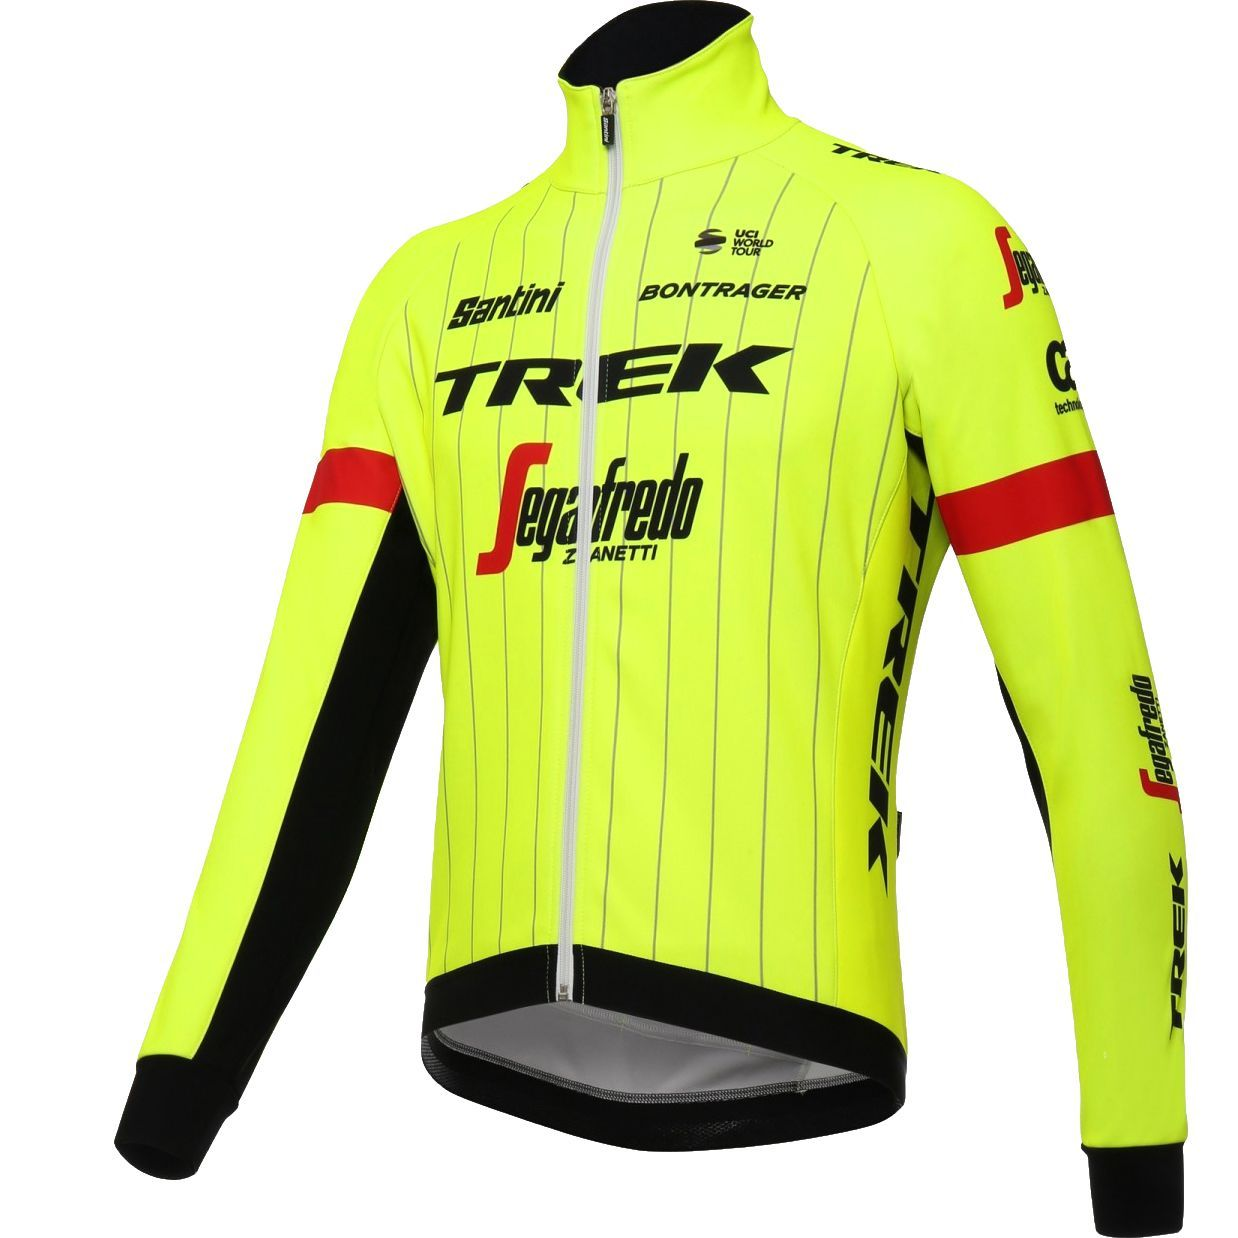 TREK - SEGAFREDO 2018 training edition winter cycling jacket - Santini  professional cycling team. Next e63149996